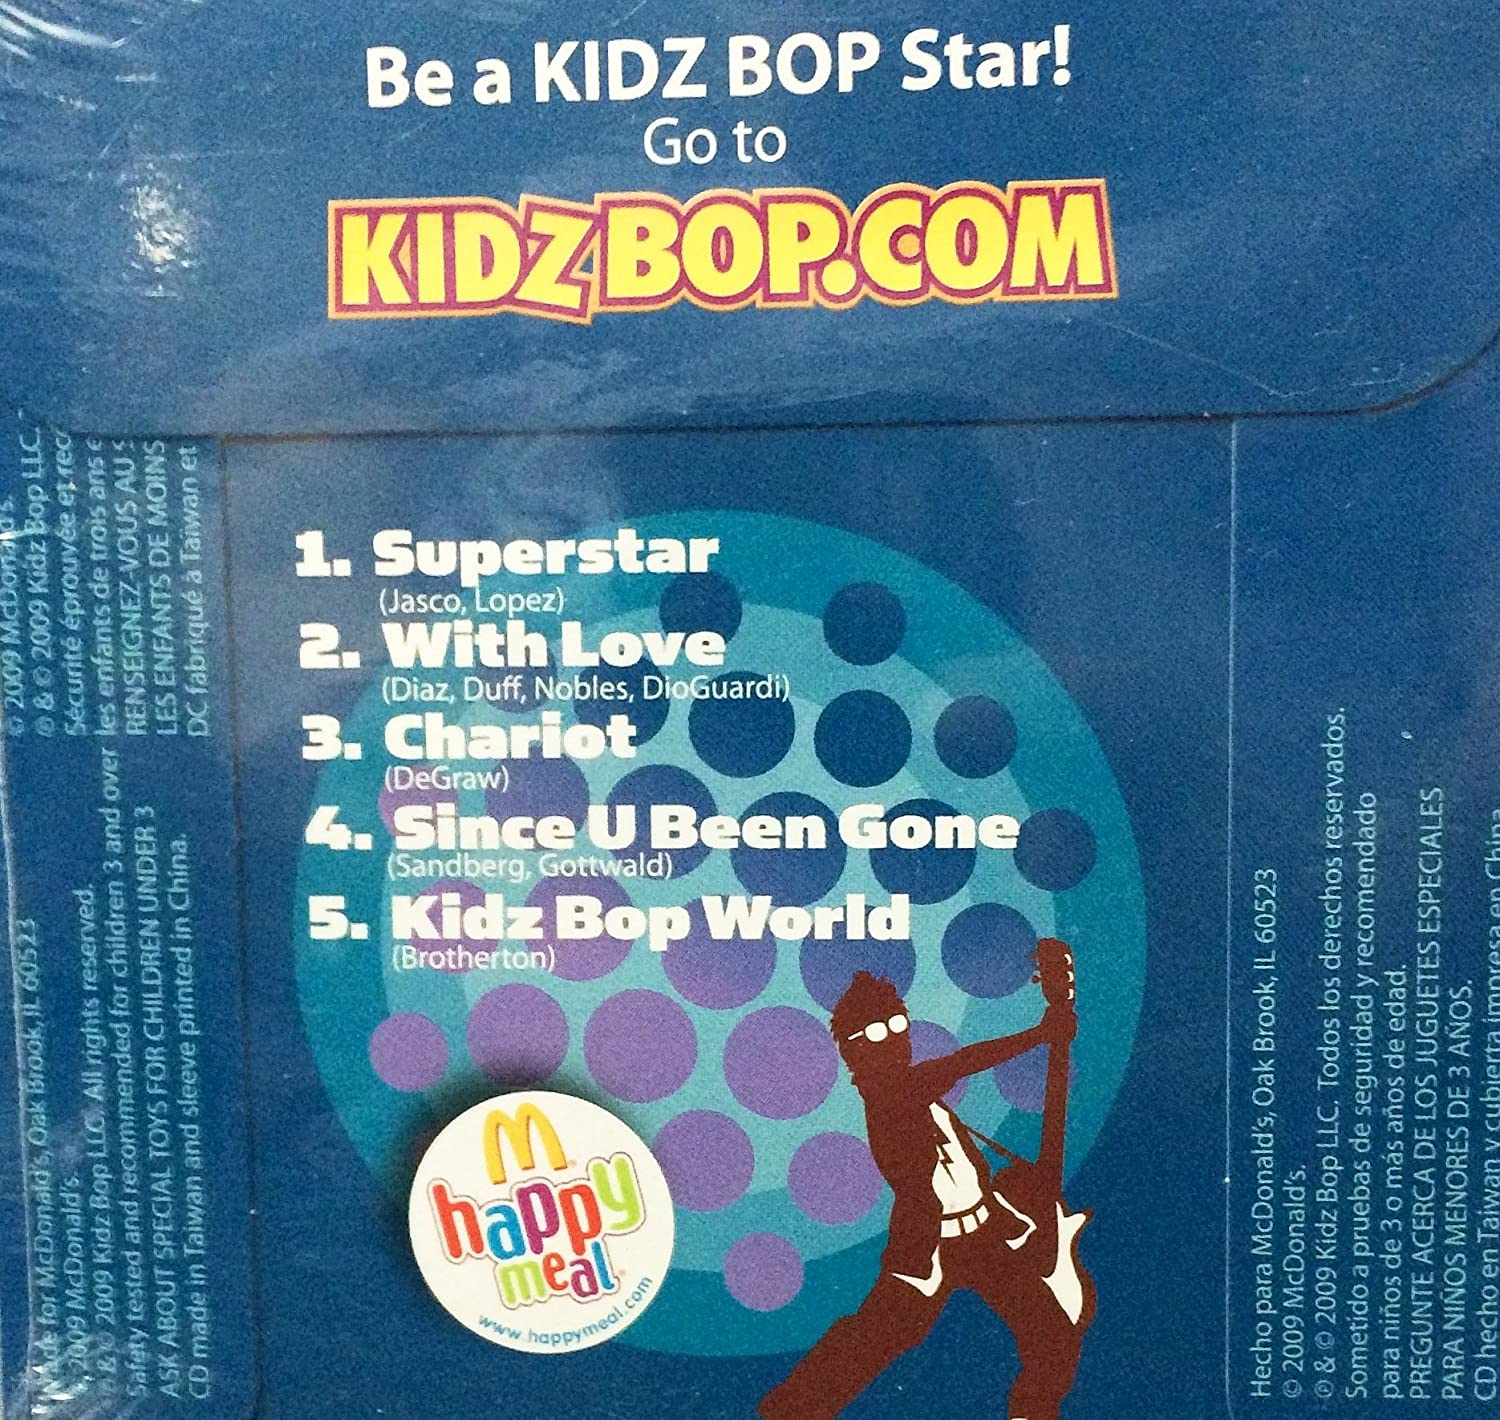 Amazon.com: Mcdonald´s Happy Meal 2009 Kidz Bop Audio CD #2: Toys & Games